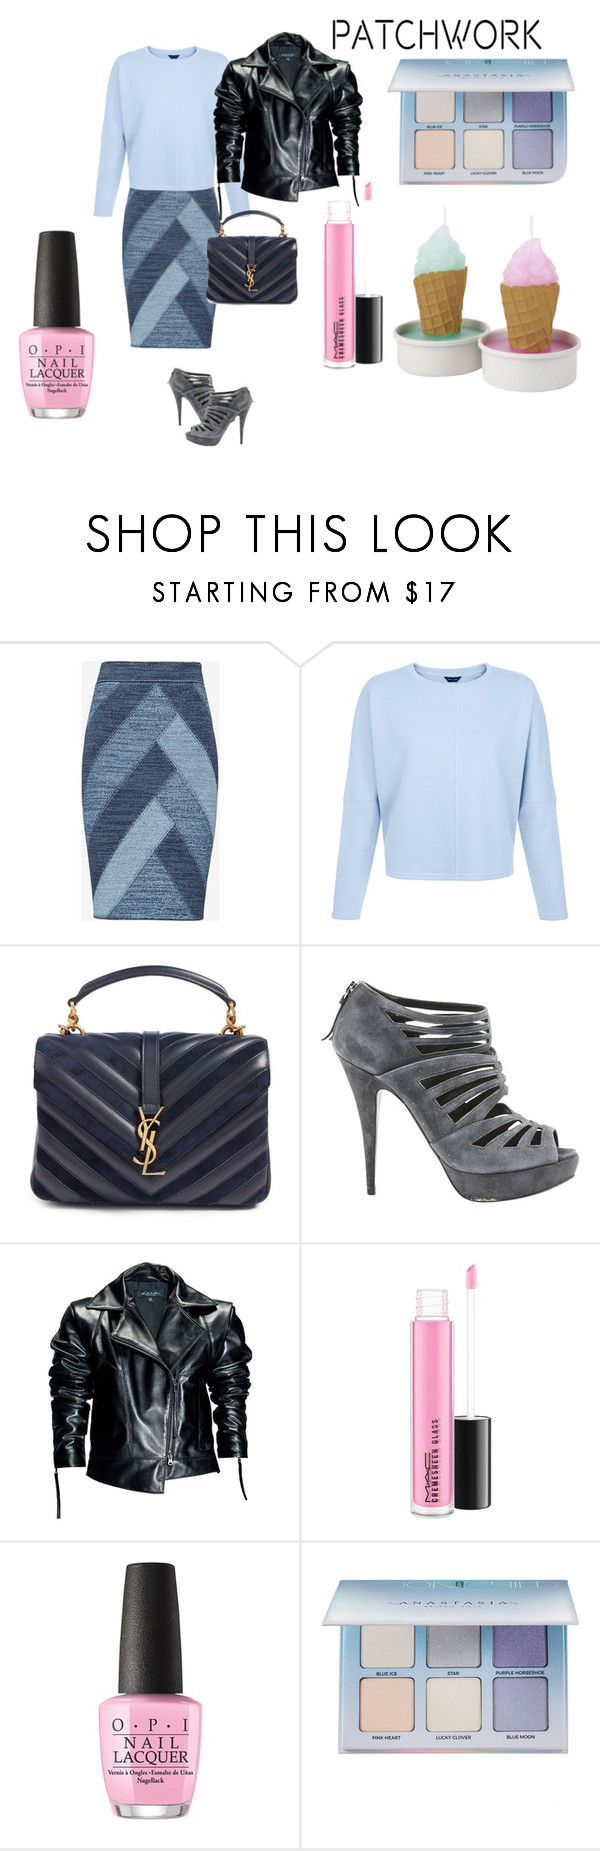 """""""Patchwork"""" by byasha ❤ liked on Polyvore featuring BCBGMAXAZRIA, Yves Saint Laurent, Miu Miu, Leka, OPI and Anastasia Beverly Hills"""